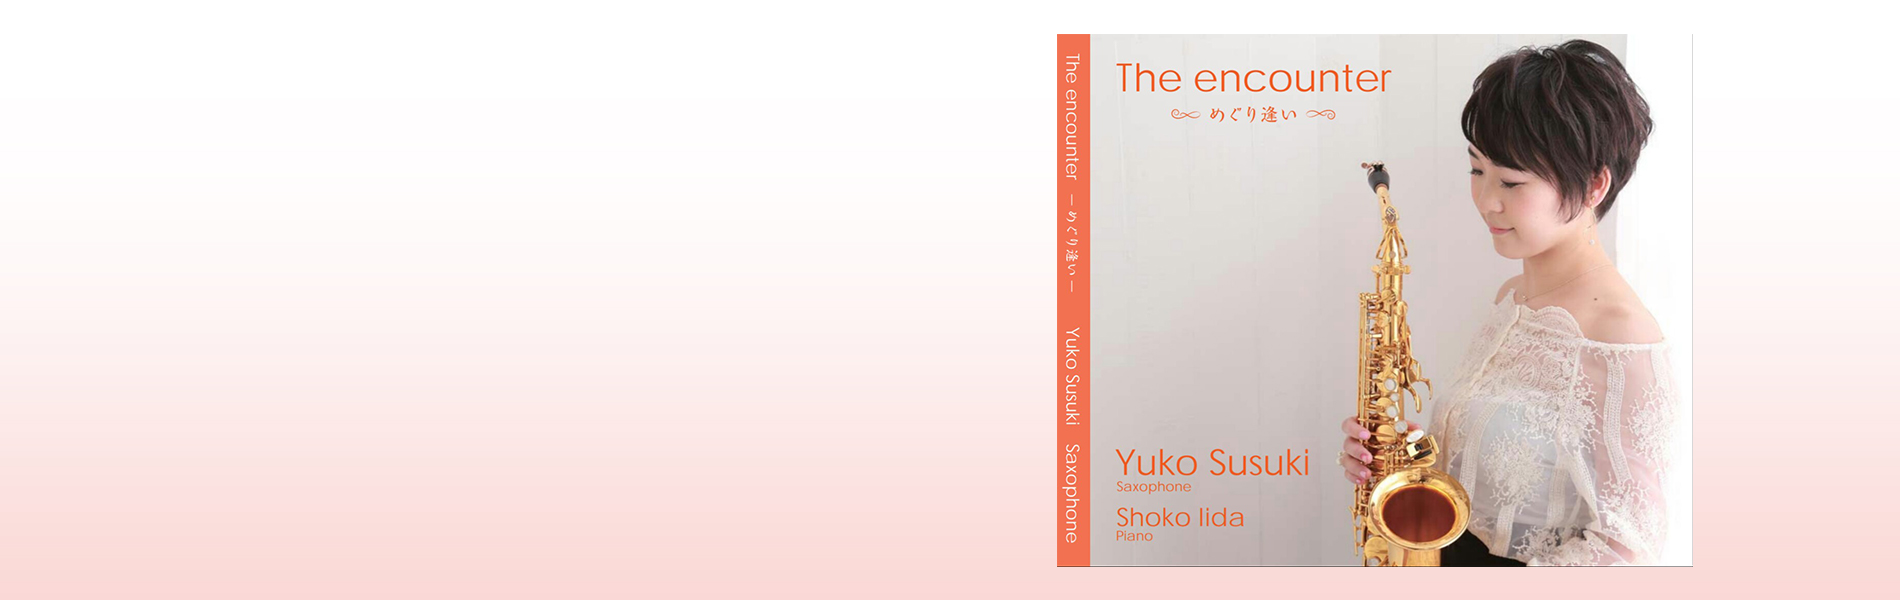 The encounter 〜めぐり逢い〜 now on sale!